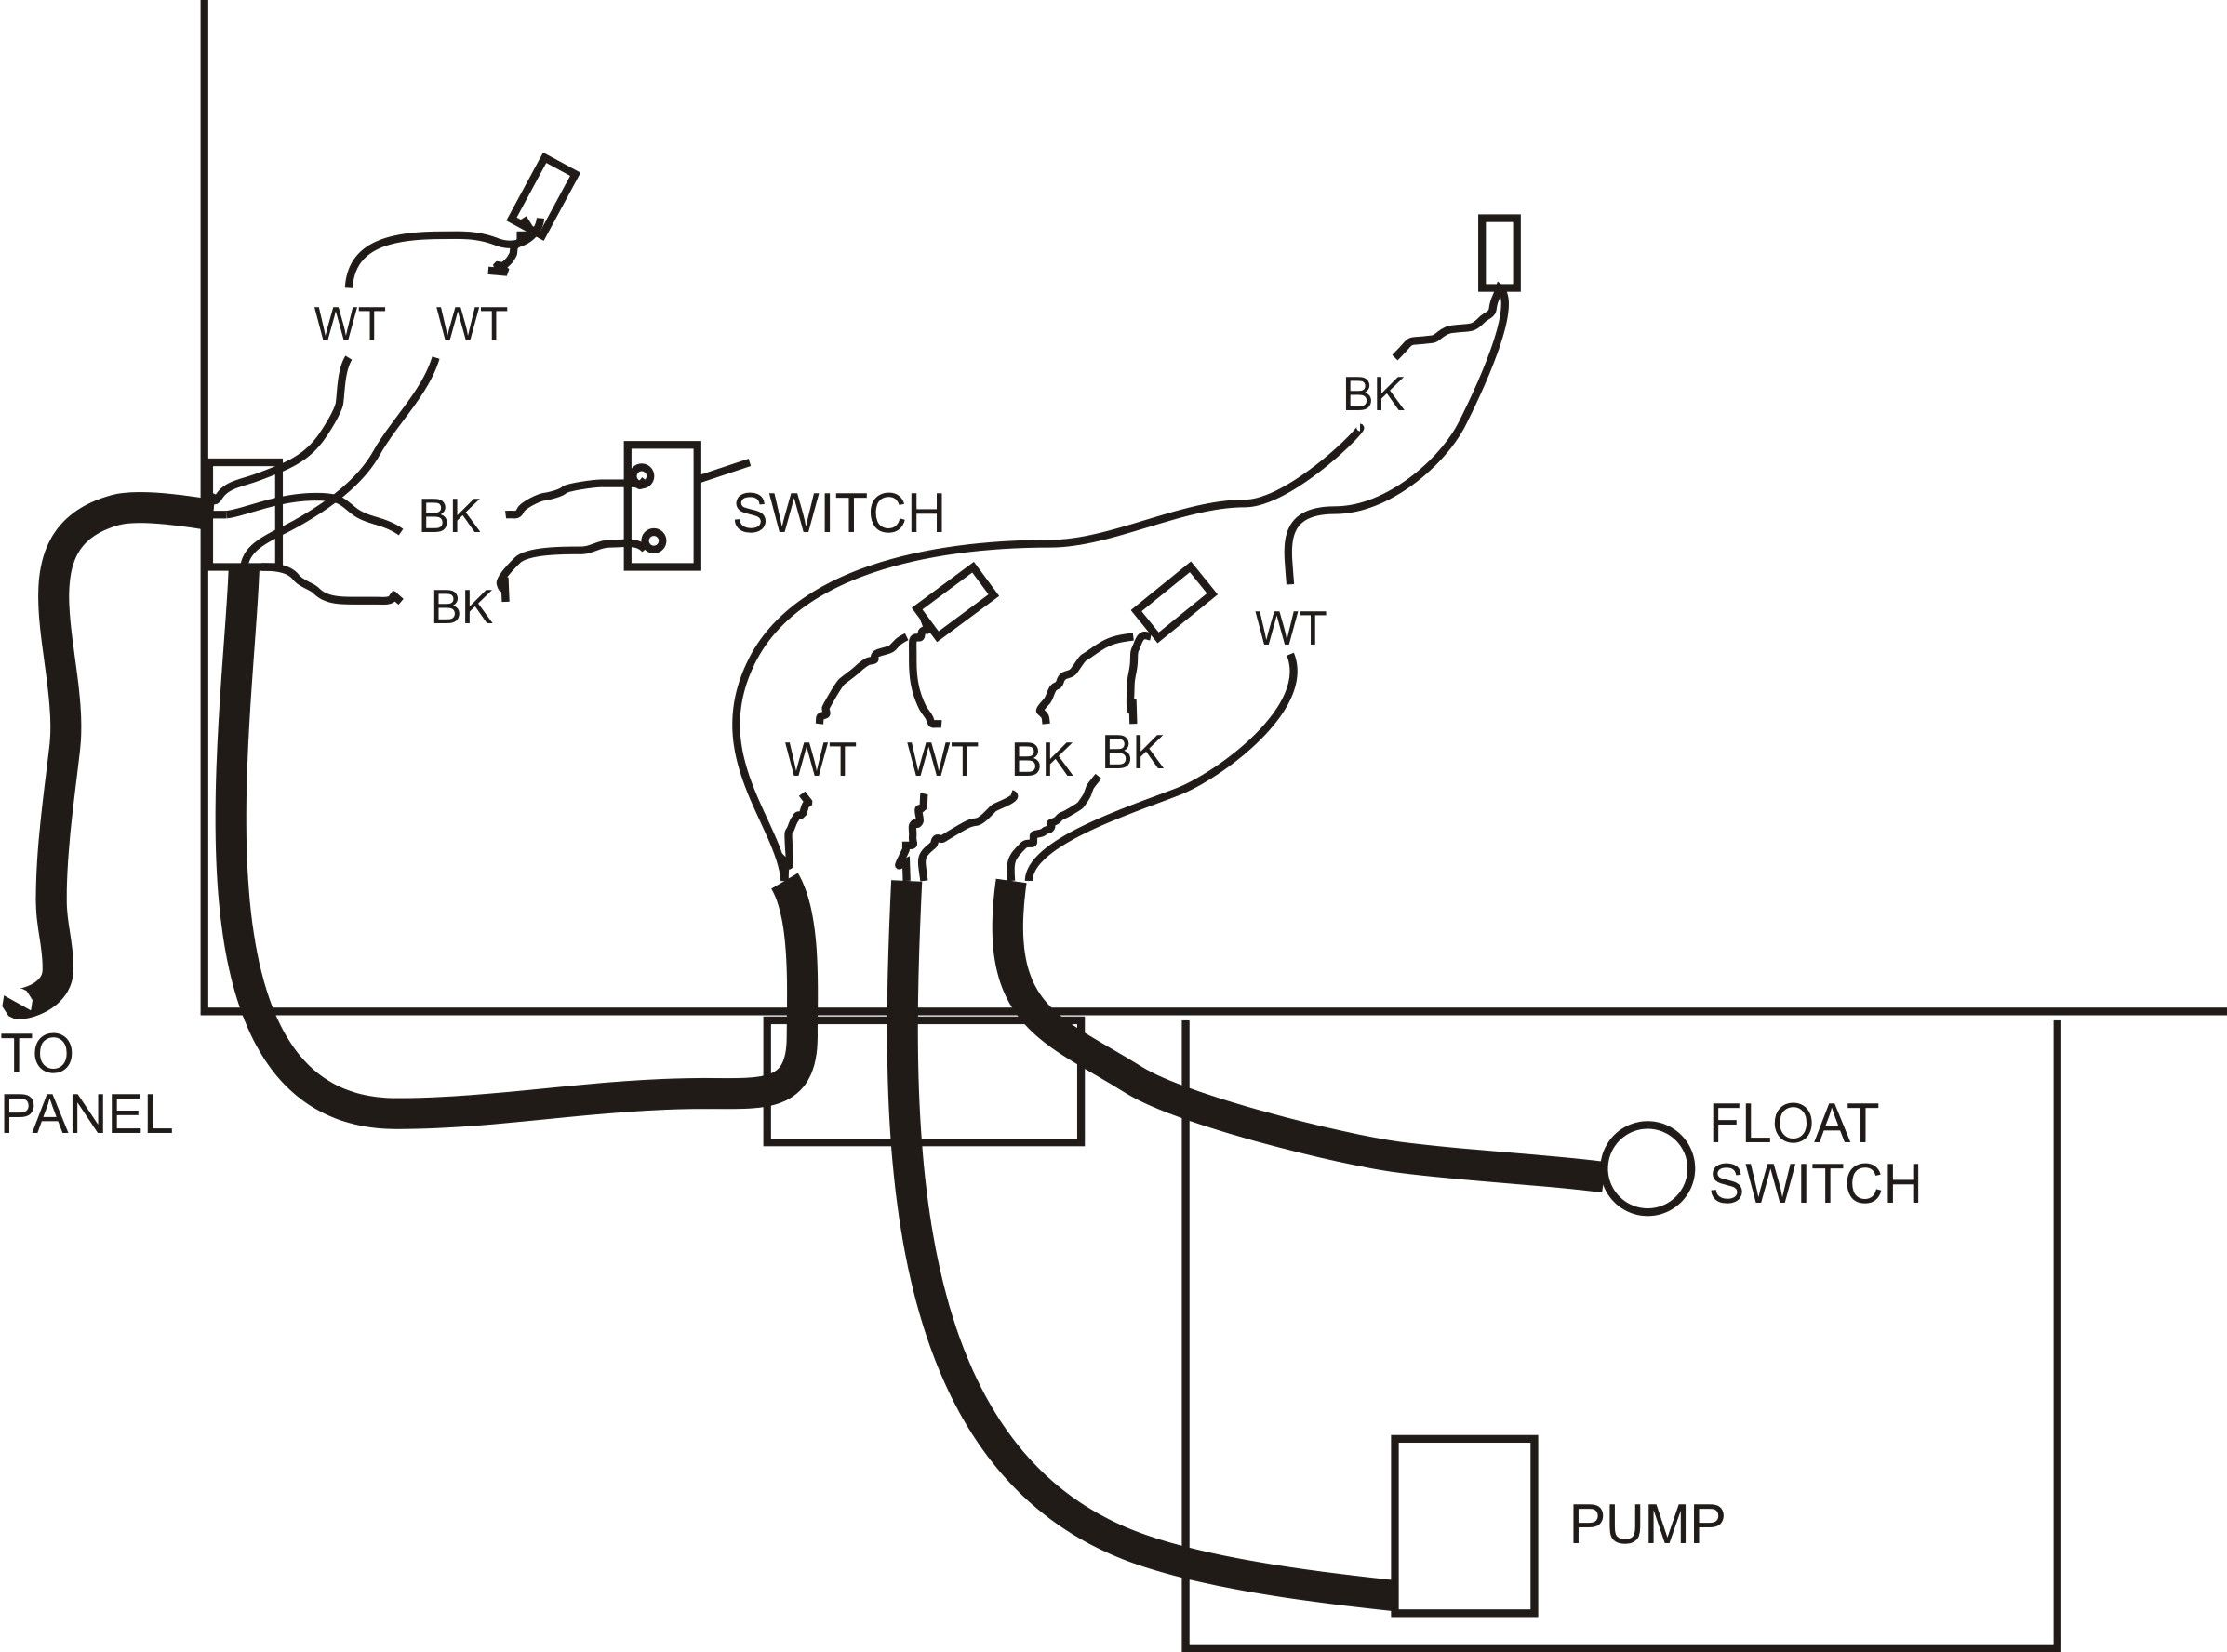 hight resolution of septic pump wiring diagram wiring diagram user septic pump float switch wiring